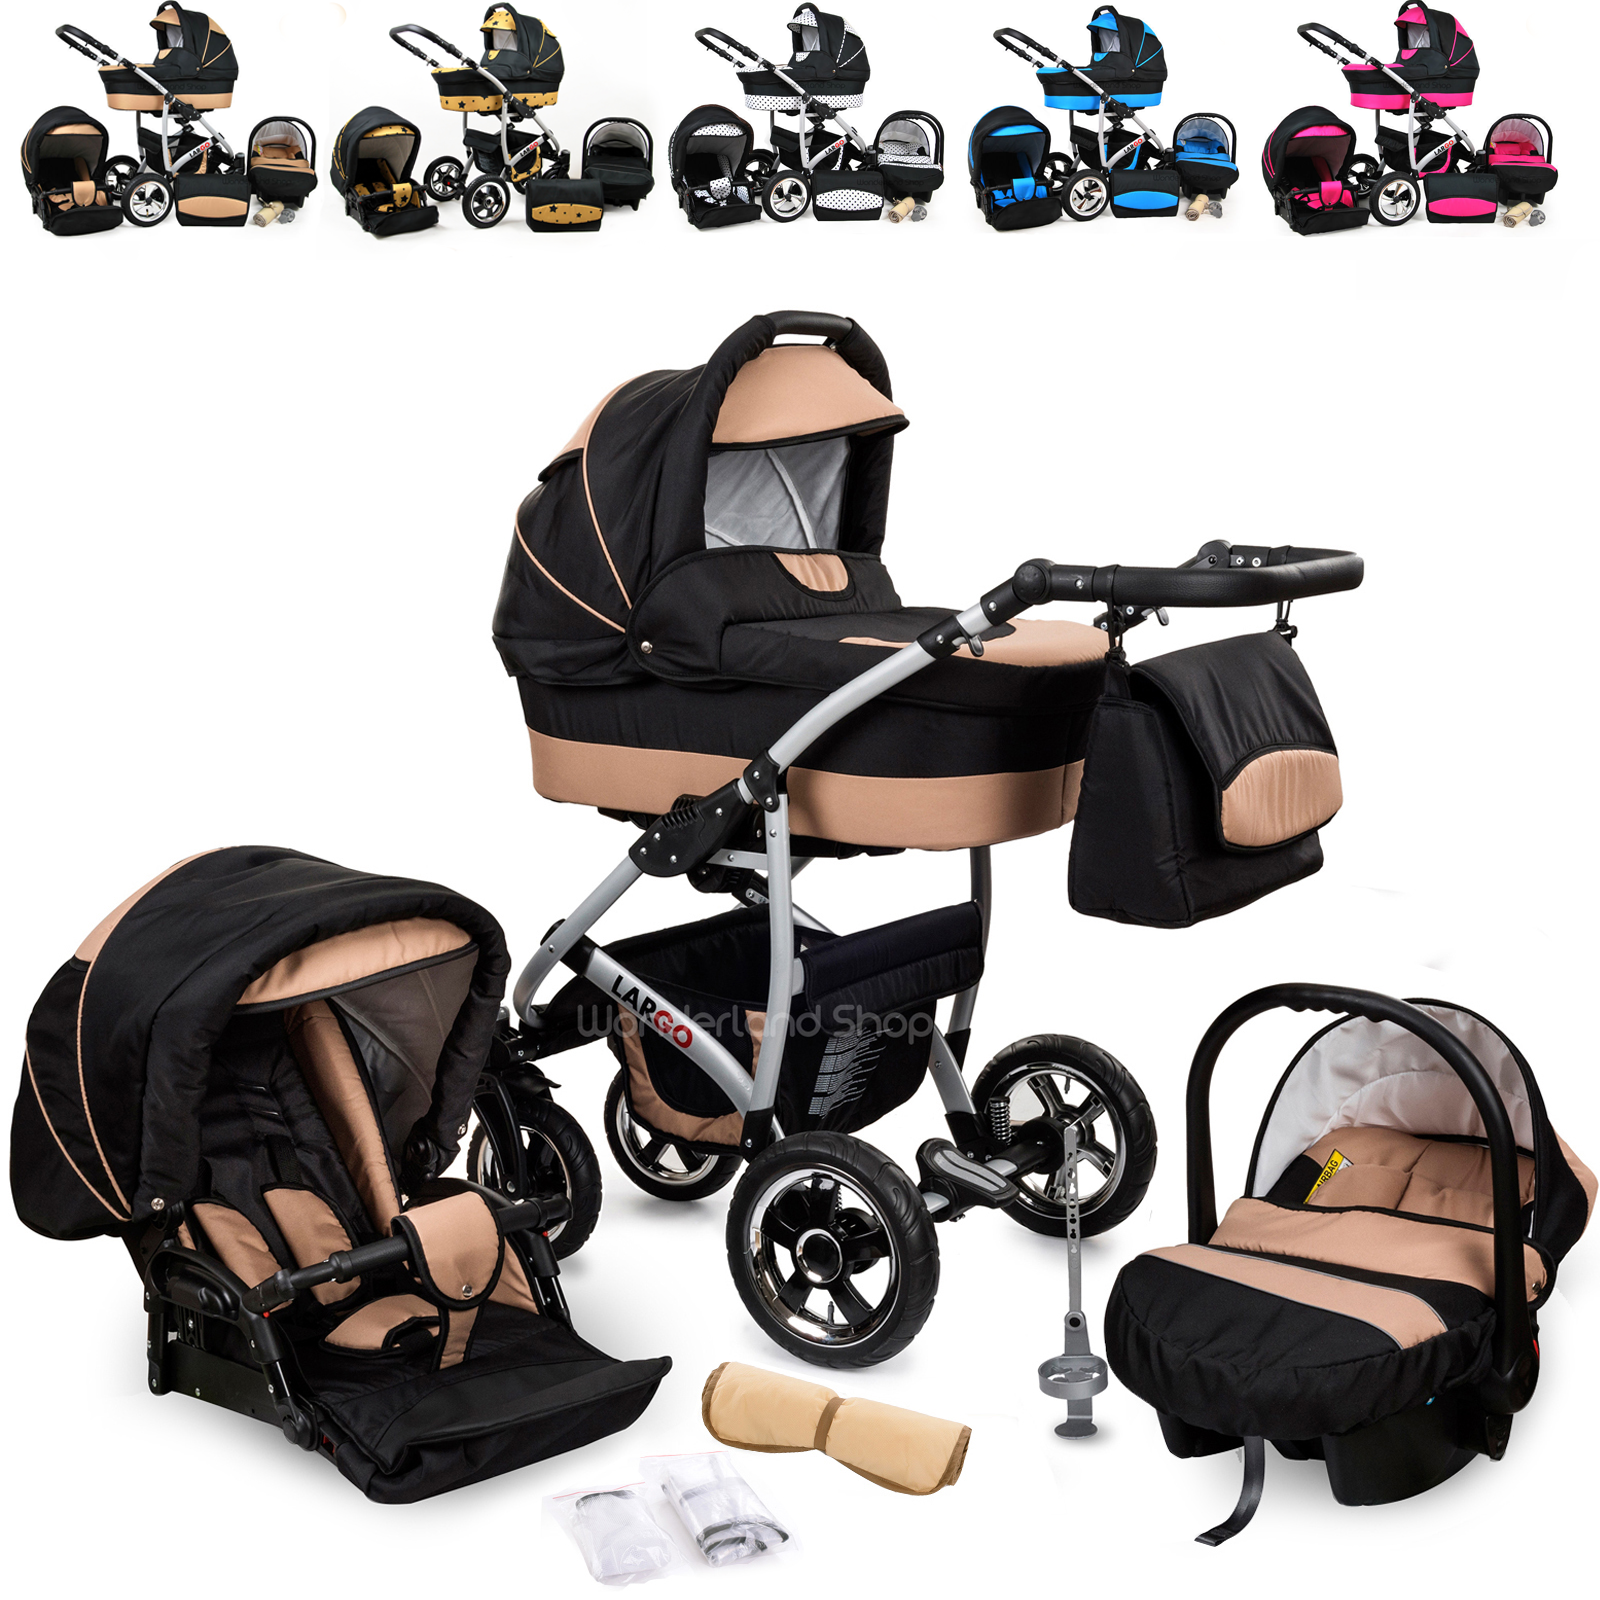 Baby Pram Buggy Newborn Car Seat 3 in 1 Travel System